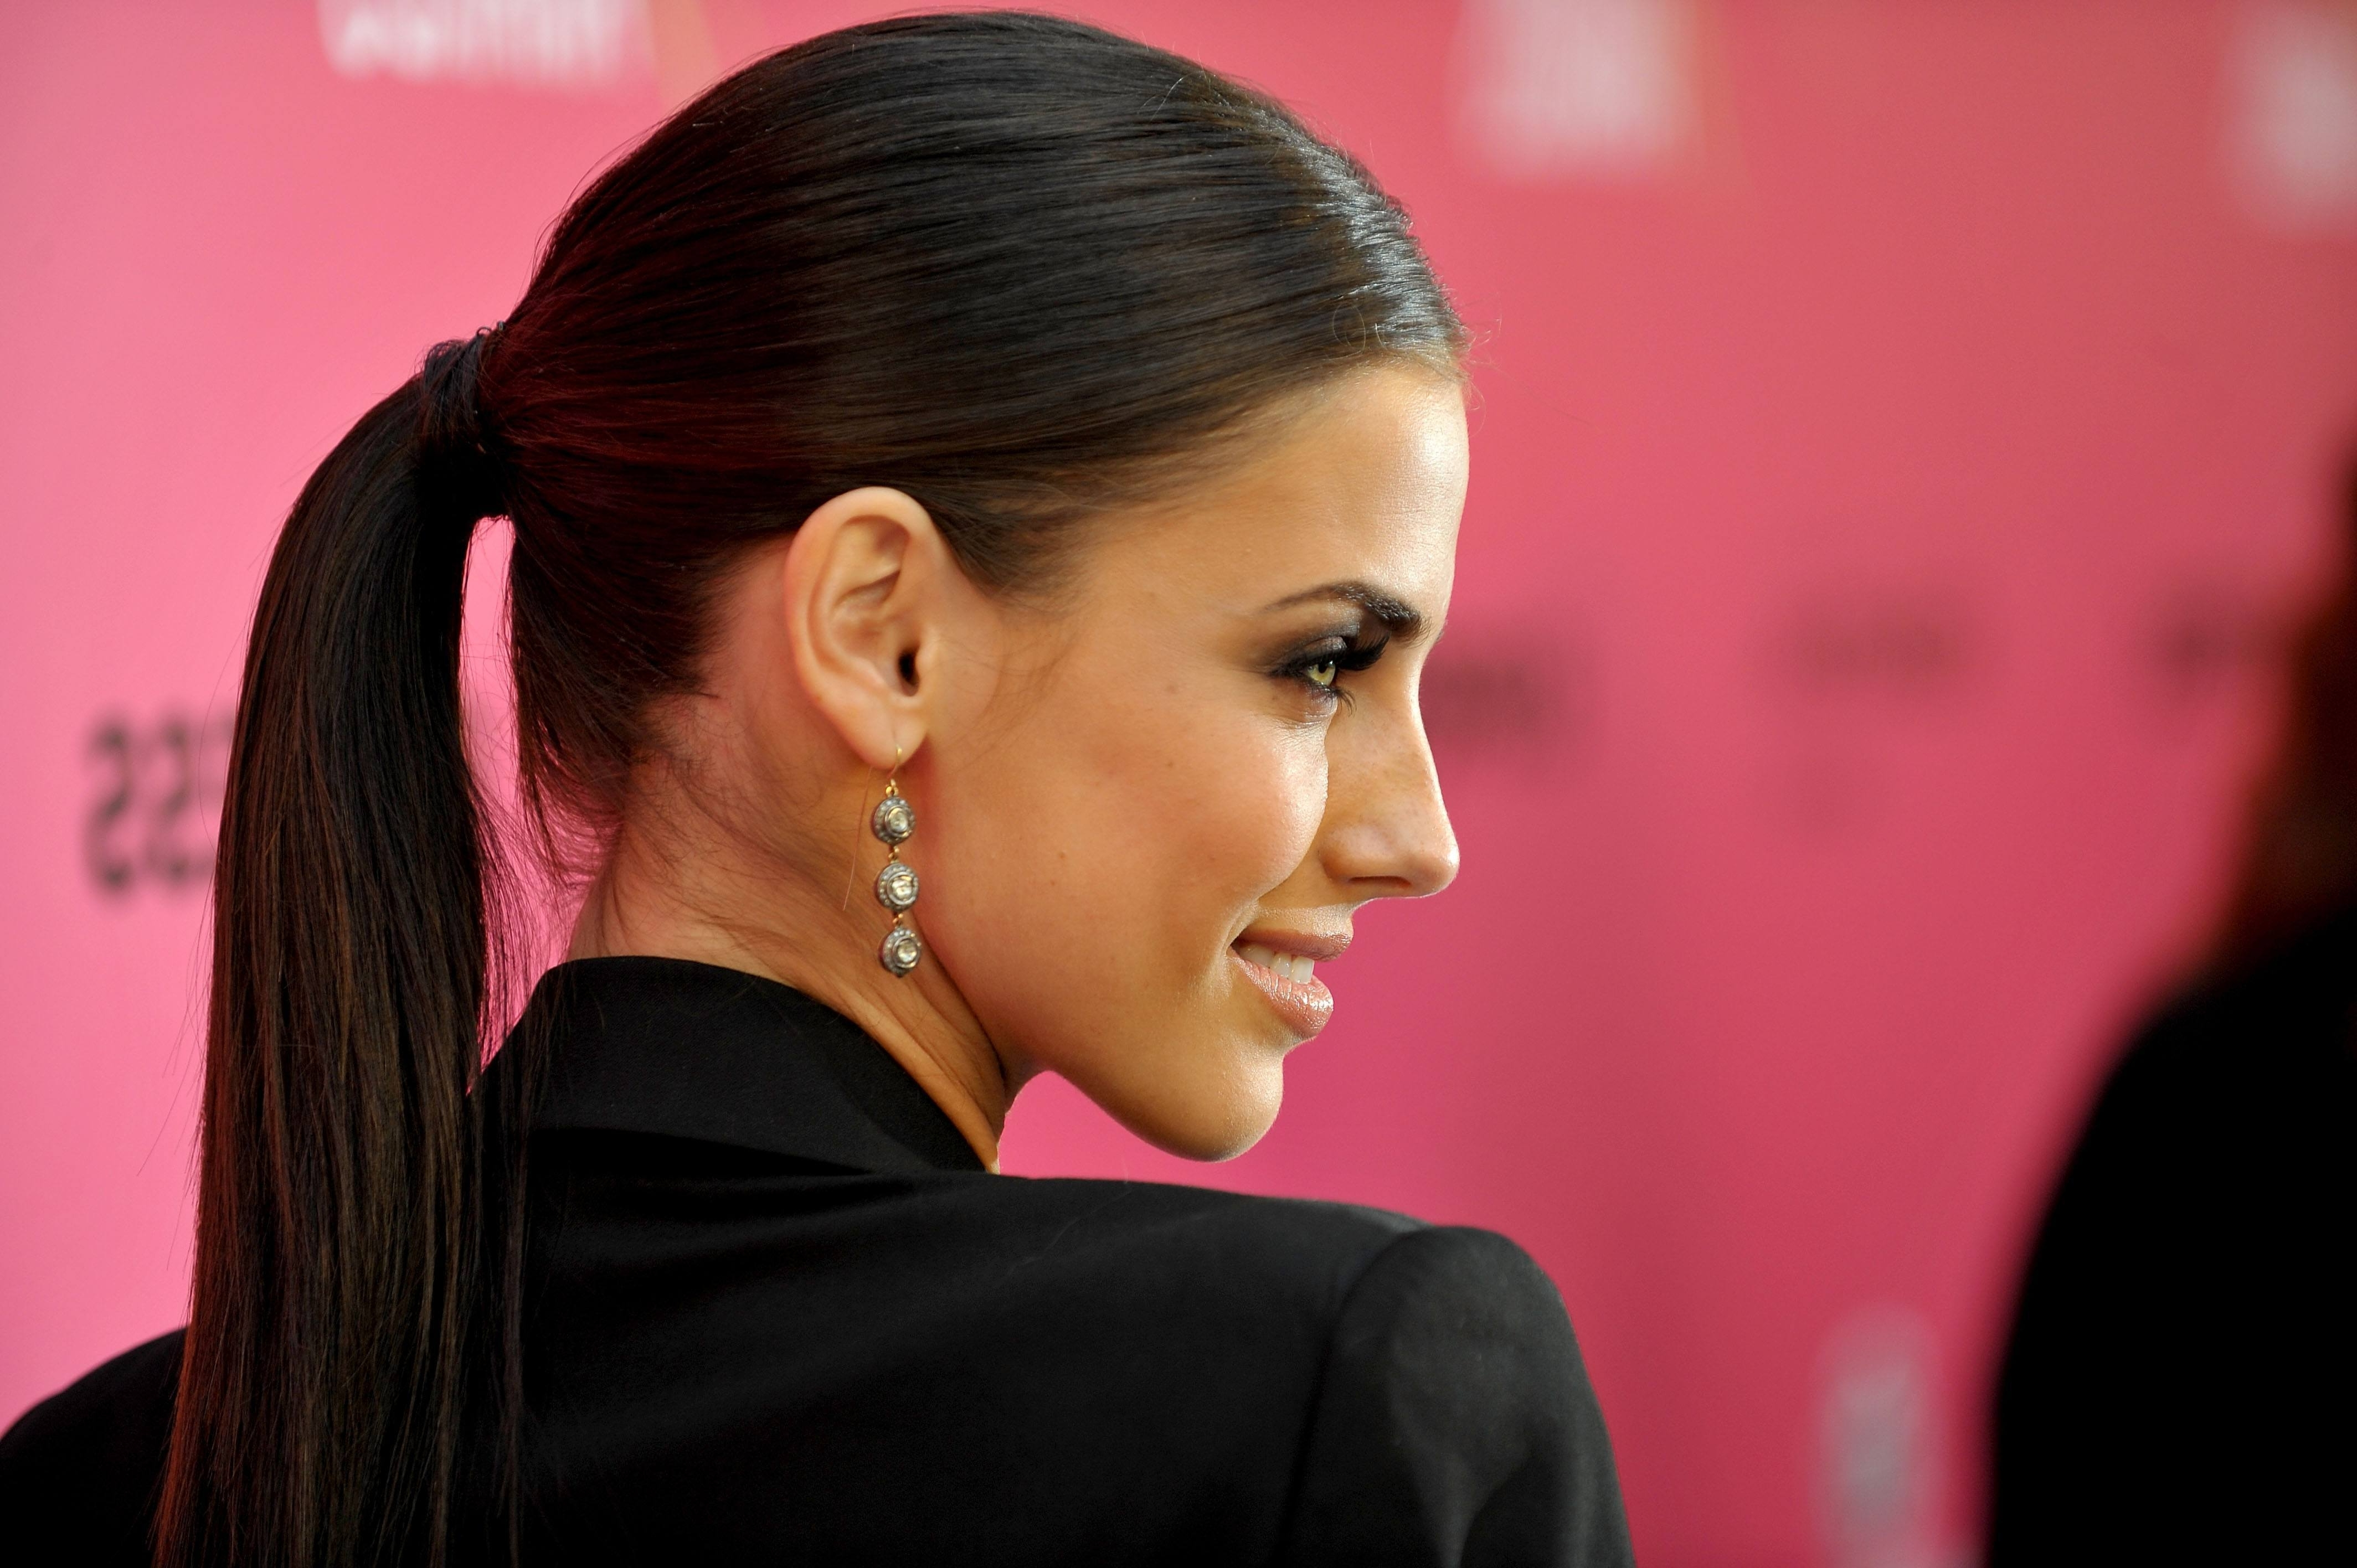 Top 25 Easy And Beautiful Ponytail Hairstyles Throughout Well Liked Super Sleek Ponytail Hairstyles (View 18 of 20)